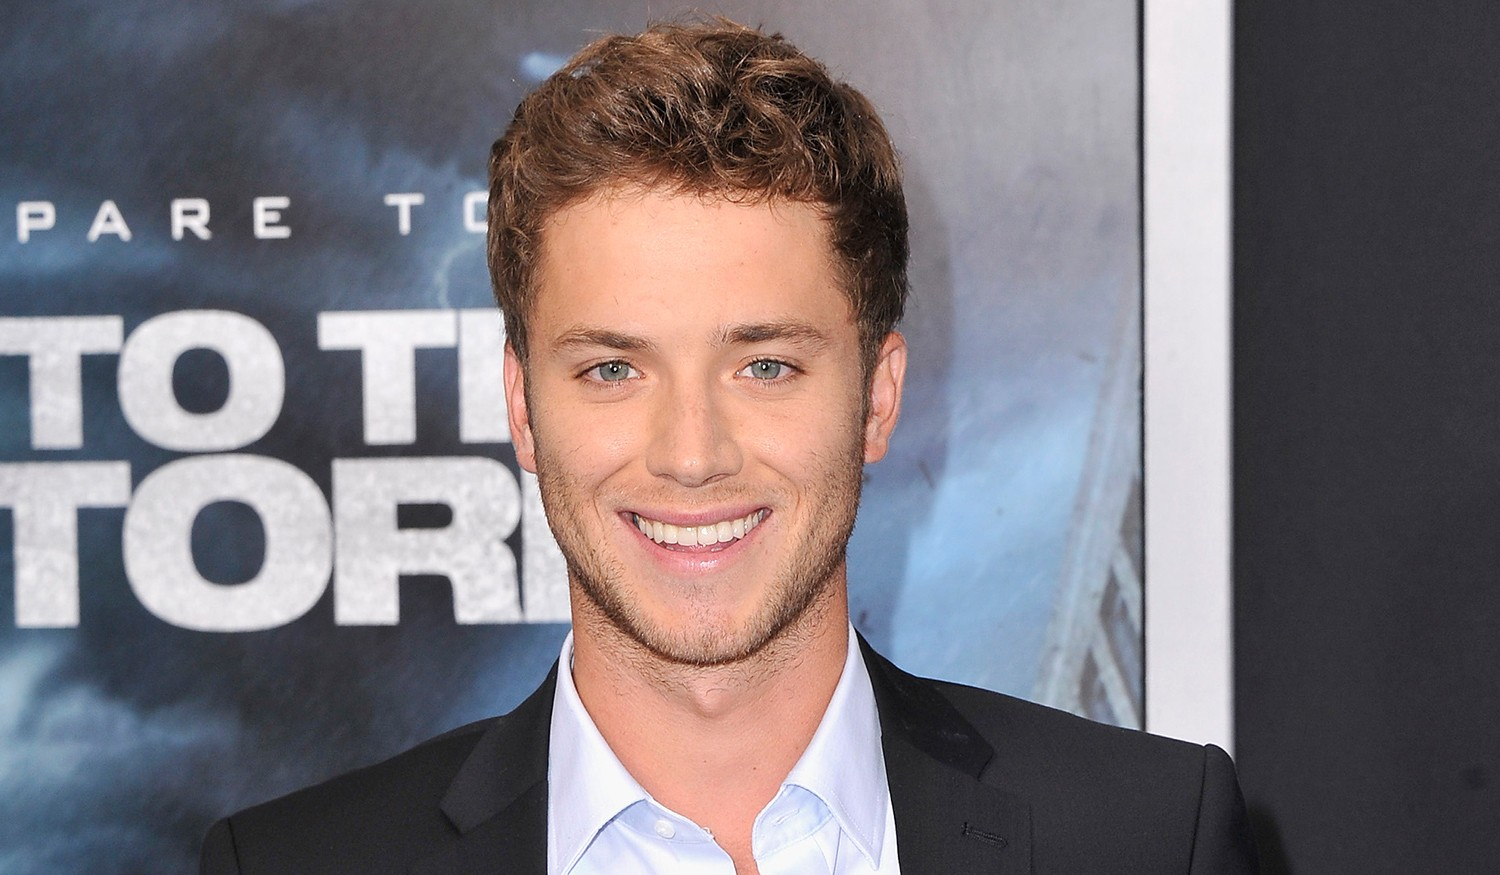 Peter Pan Is Getting Married Actor Jeremy Sumpter Engaged